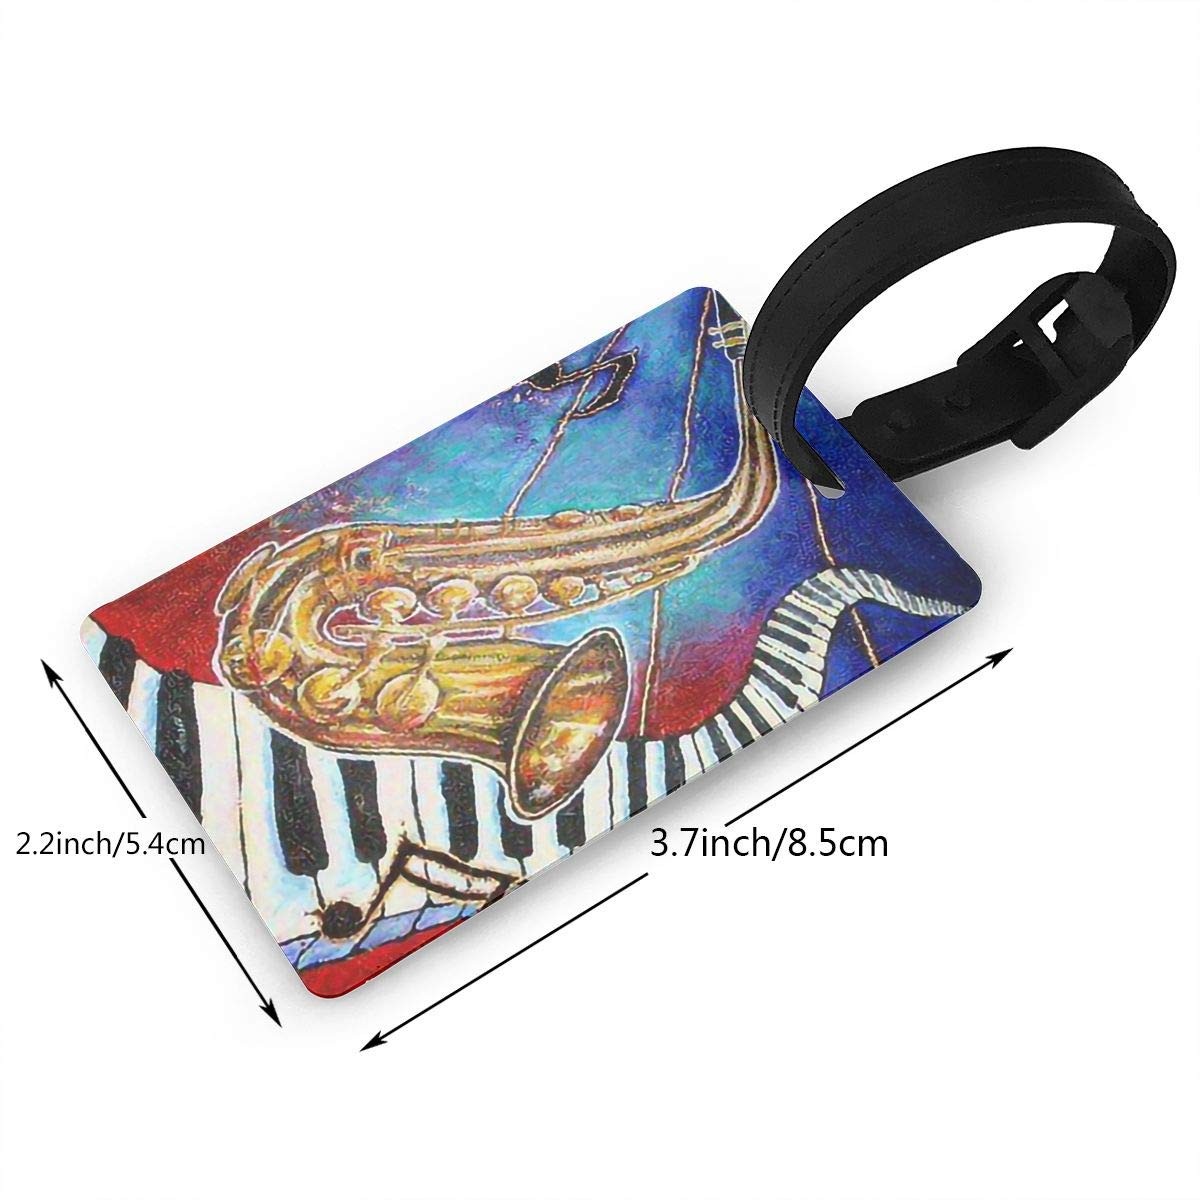 Saxophone Keyboard Travel Tags For Travel Tags Accessories 2 Pack Luggage Tags